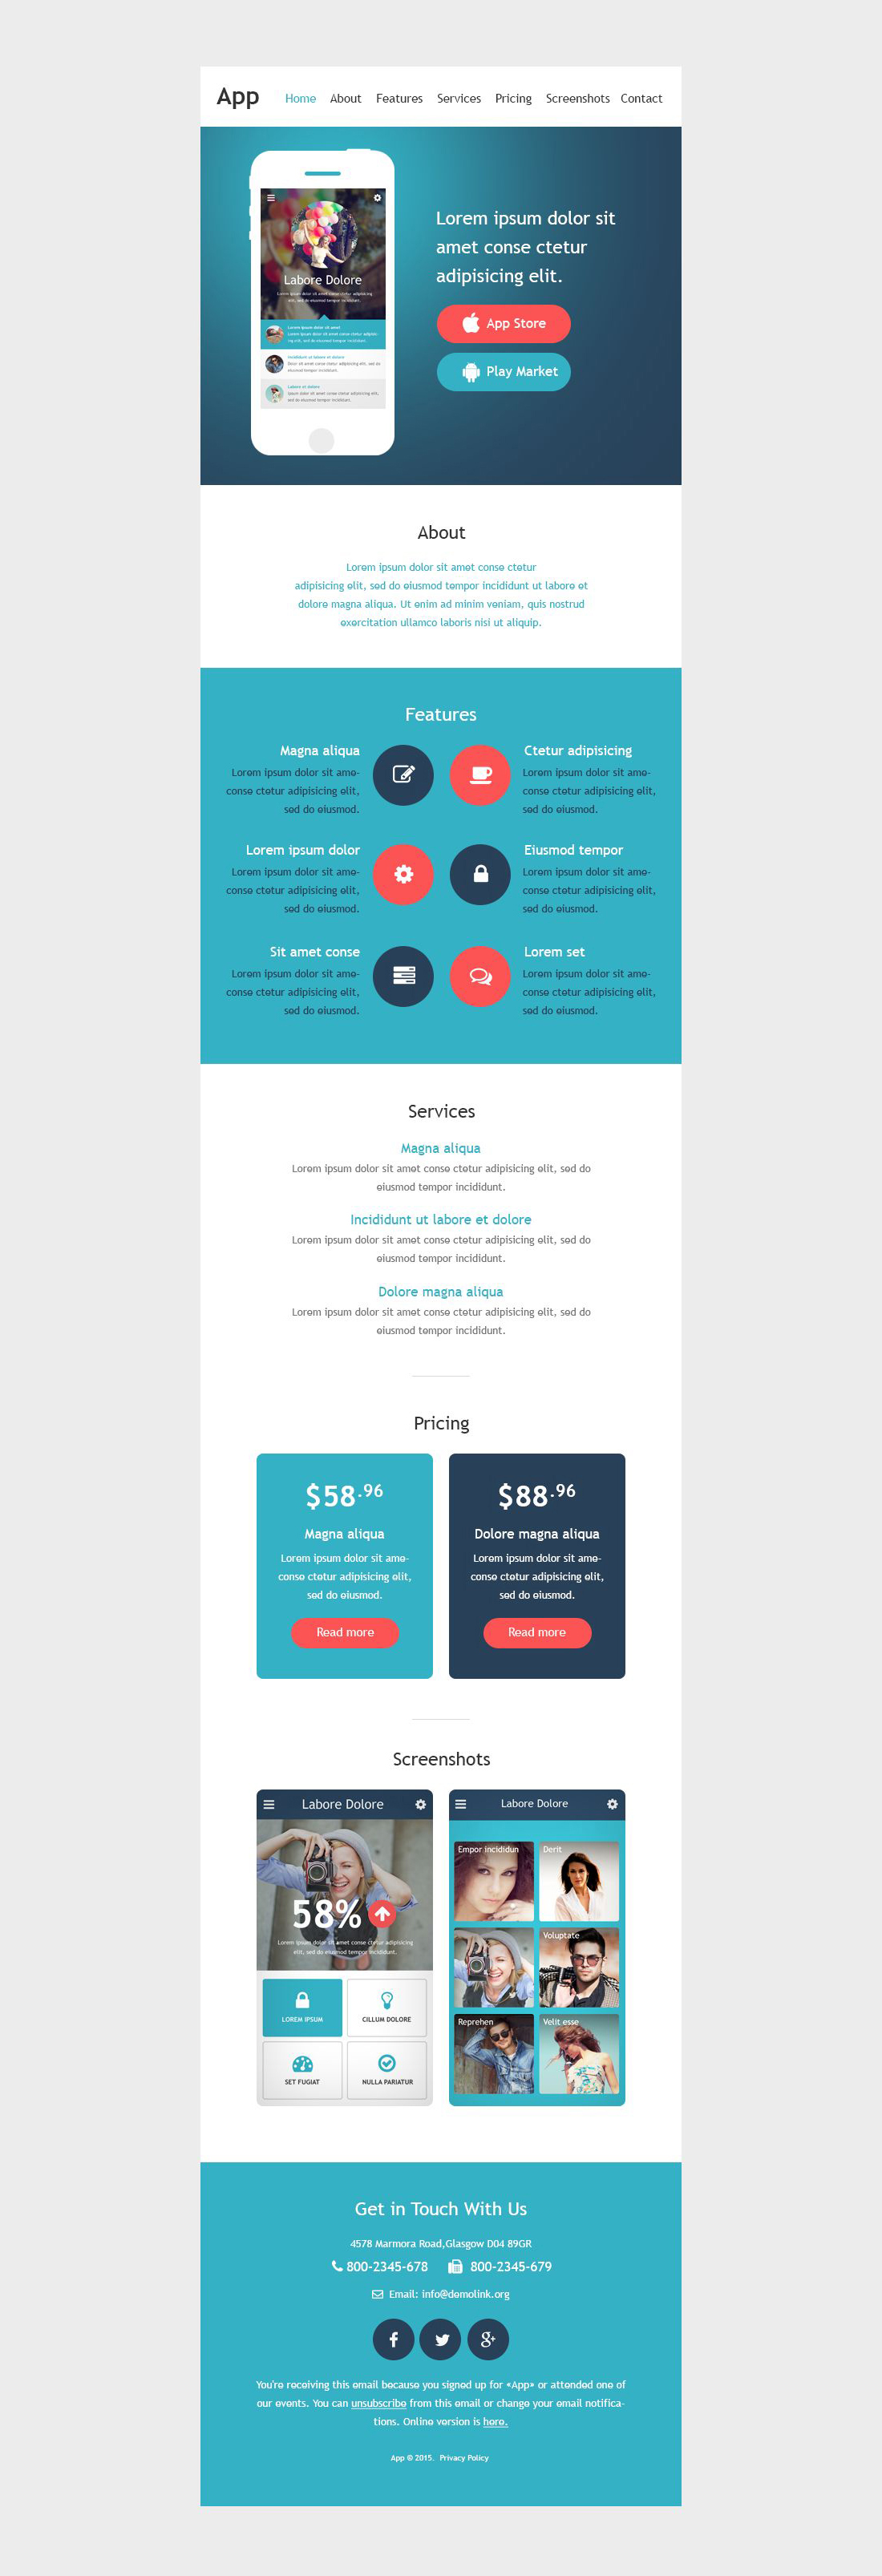 The Application Software Newsletter Template Design 53026, one of the best Newsletter templates of its kind (software, most popular), also known as application software Newsletter template, web development Newsletter template, webmasters Newsletter template, designers Newsletter template, internet Newsletter template, www Newsletter template, sites Newsletter template, web design Newsletter template, webpage Newsletter template, internet Newsletter template, aps and related with application software, web development, webmasters, designers, internet, www, sites, web design, webpage, internet, aps, etc.